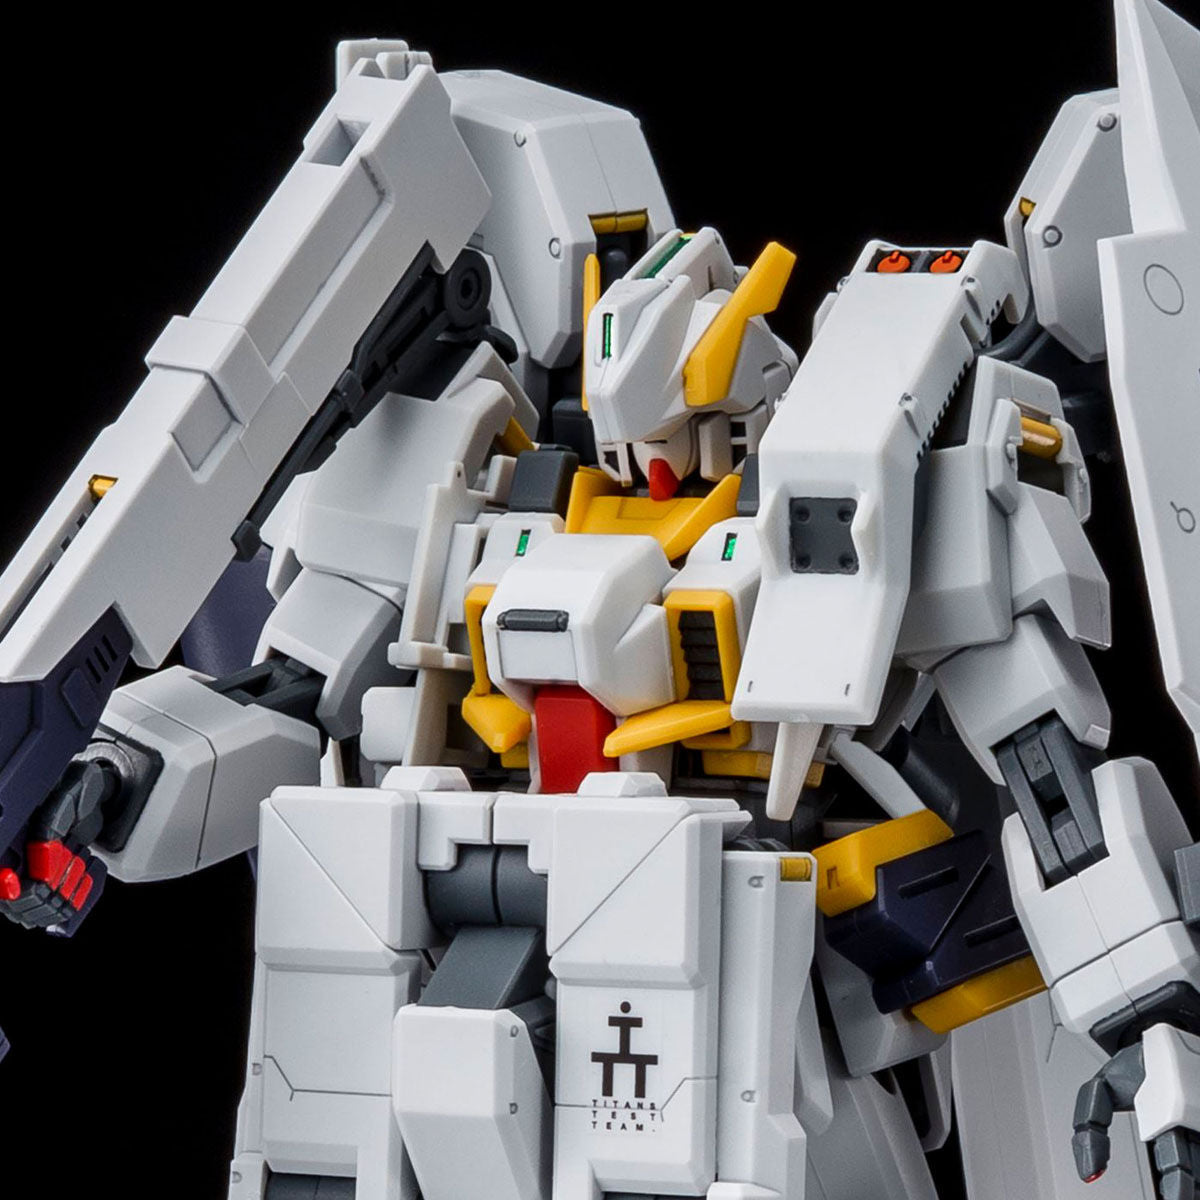 P-Bandai: HGUC 1/144 Primrose - Upgrade Parts Only [End of February 2020]